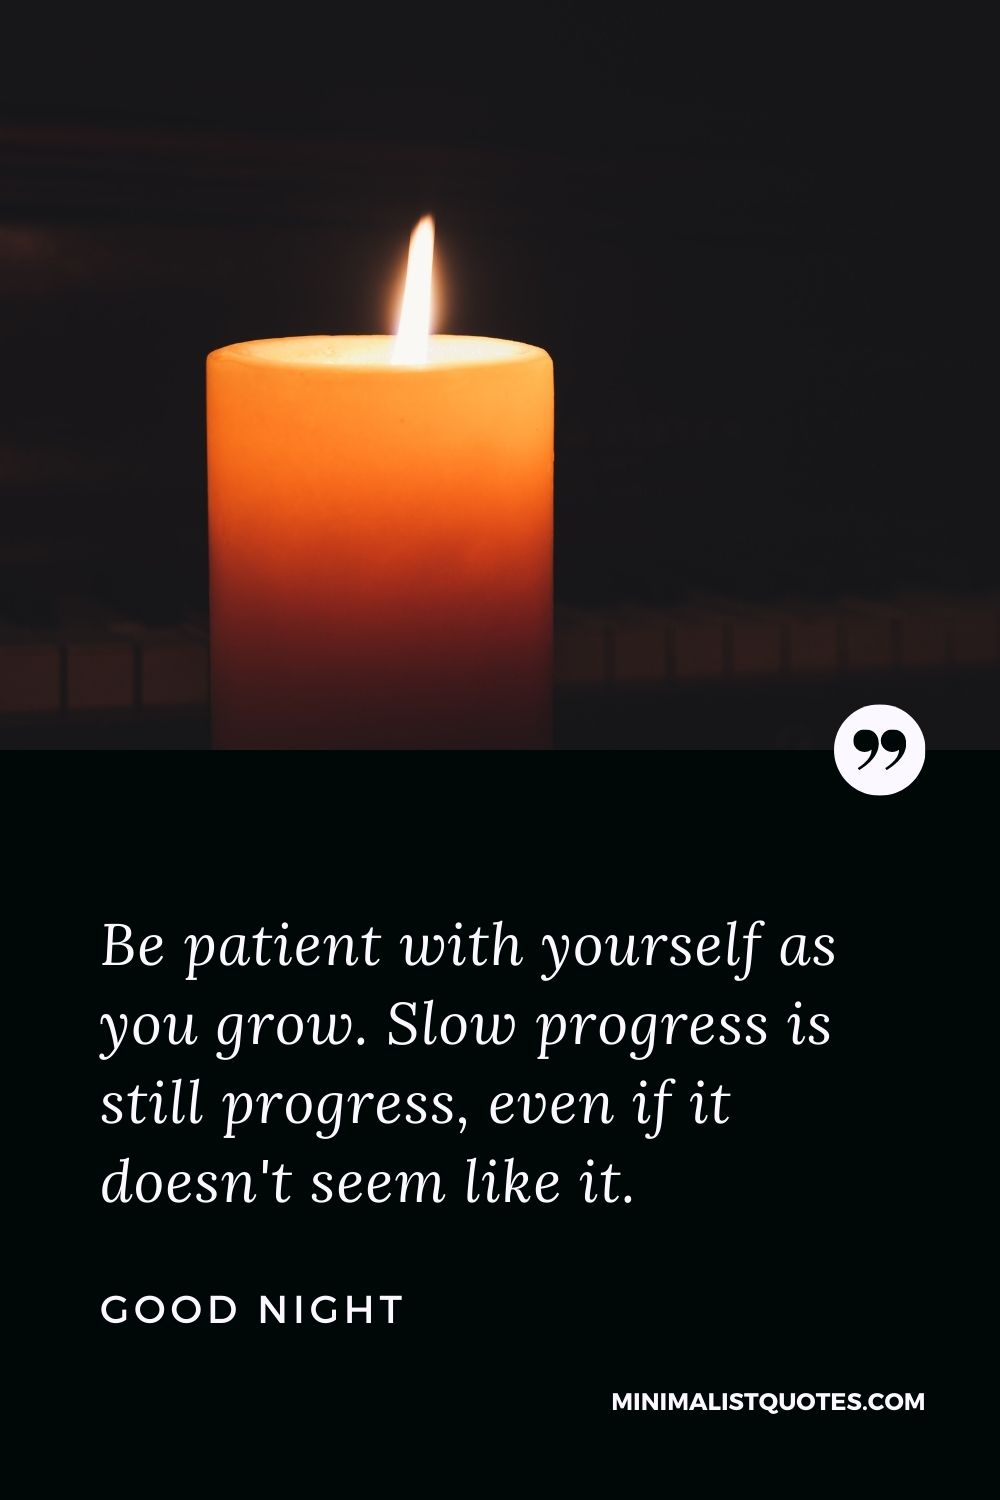 Good Night Wish & Message Image: Be patient with yourself as you grow. Slow progress is still progress, even if it doesn't seem like it.